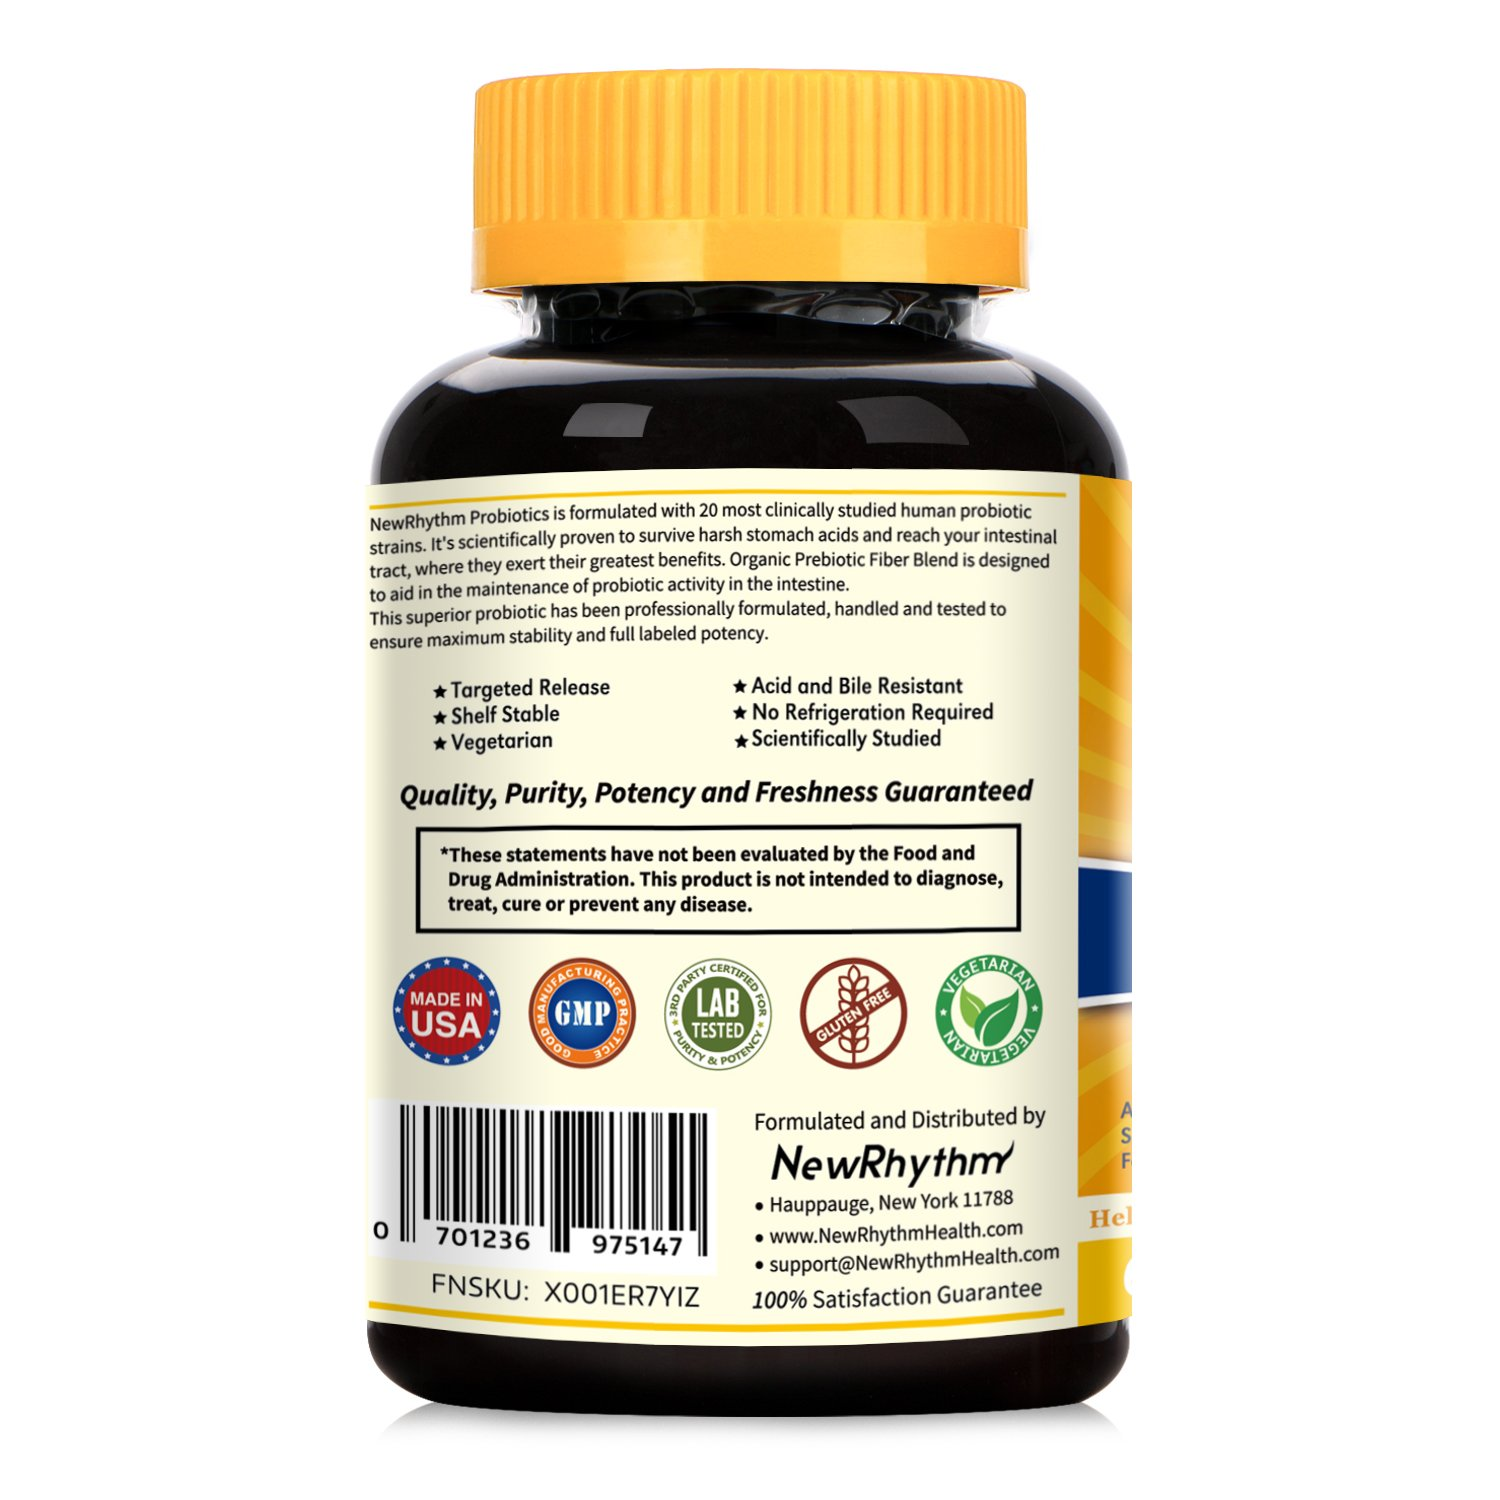 Newrhythm Probiotics 50 Billion Cfu 20 Strains 60 Veggie